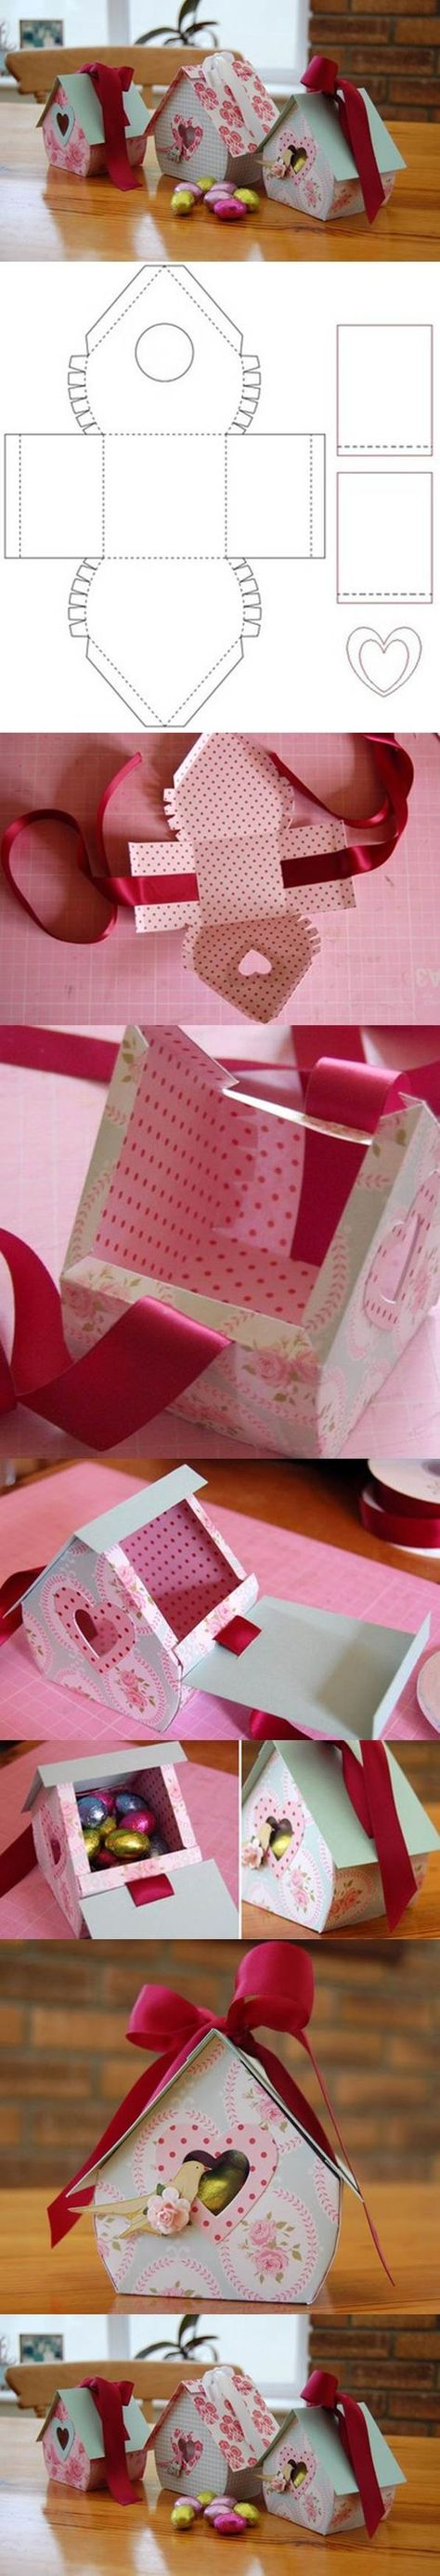 Homemade gift boxes templates